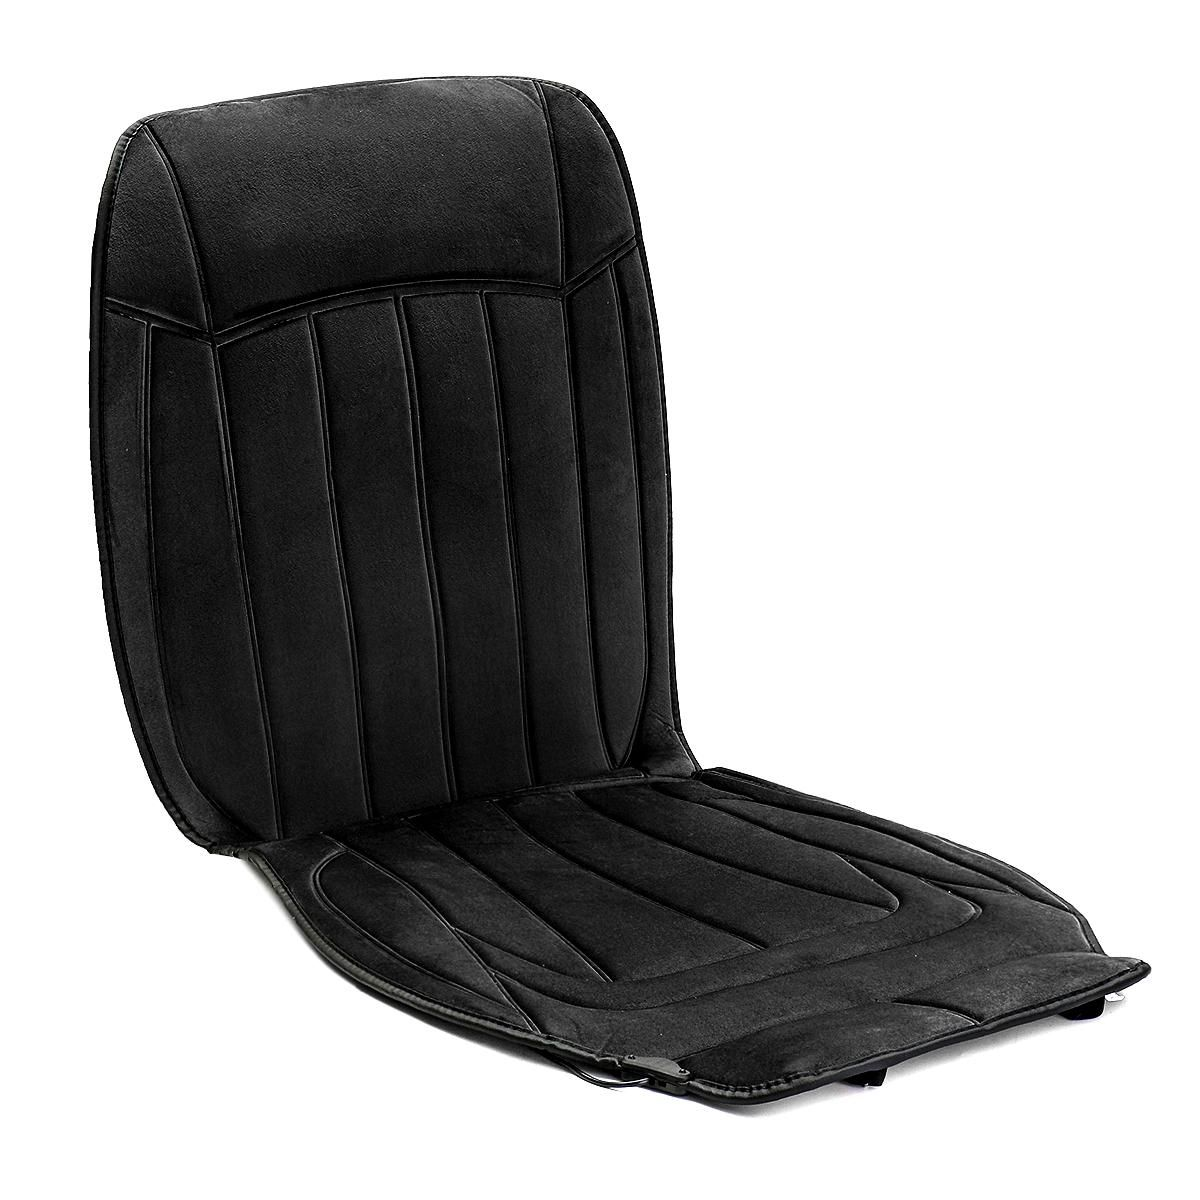 ODP US$31.39 12V Electric Fleeced Car Heated Seat Cushion Cover Seat Heater Warmer Winter Household Mat